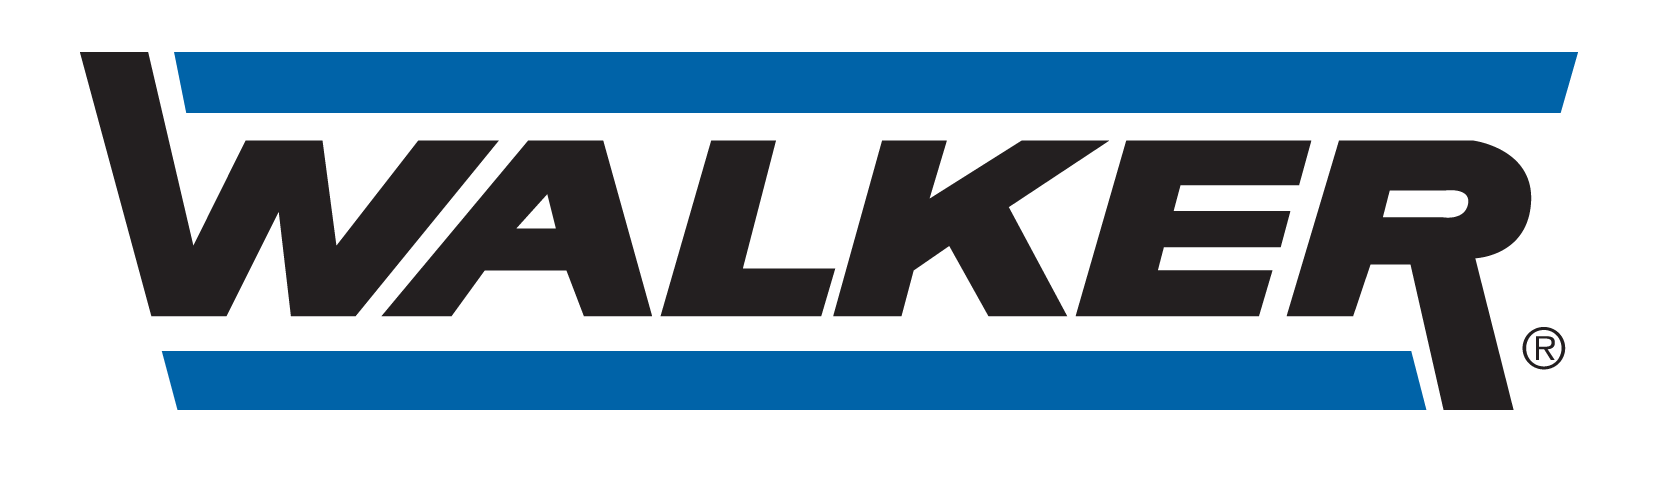 GARAGE KELLY - logo Walker